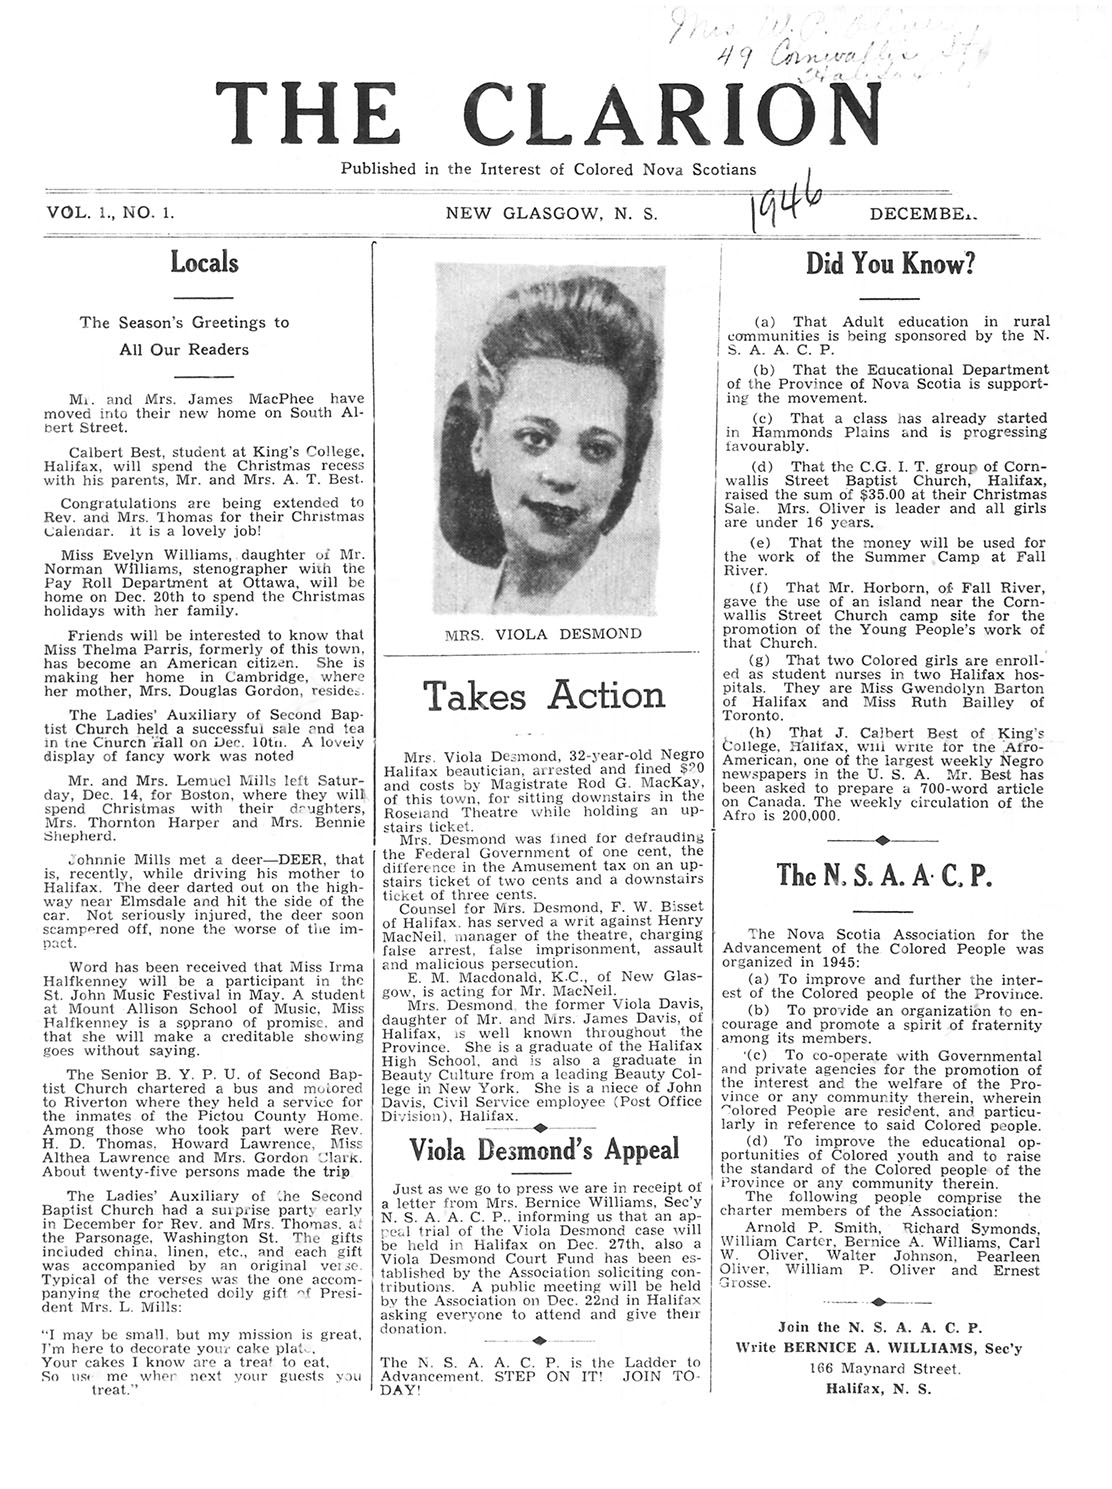 Viola Desmond dans le journal « The Clarion »